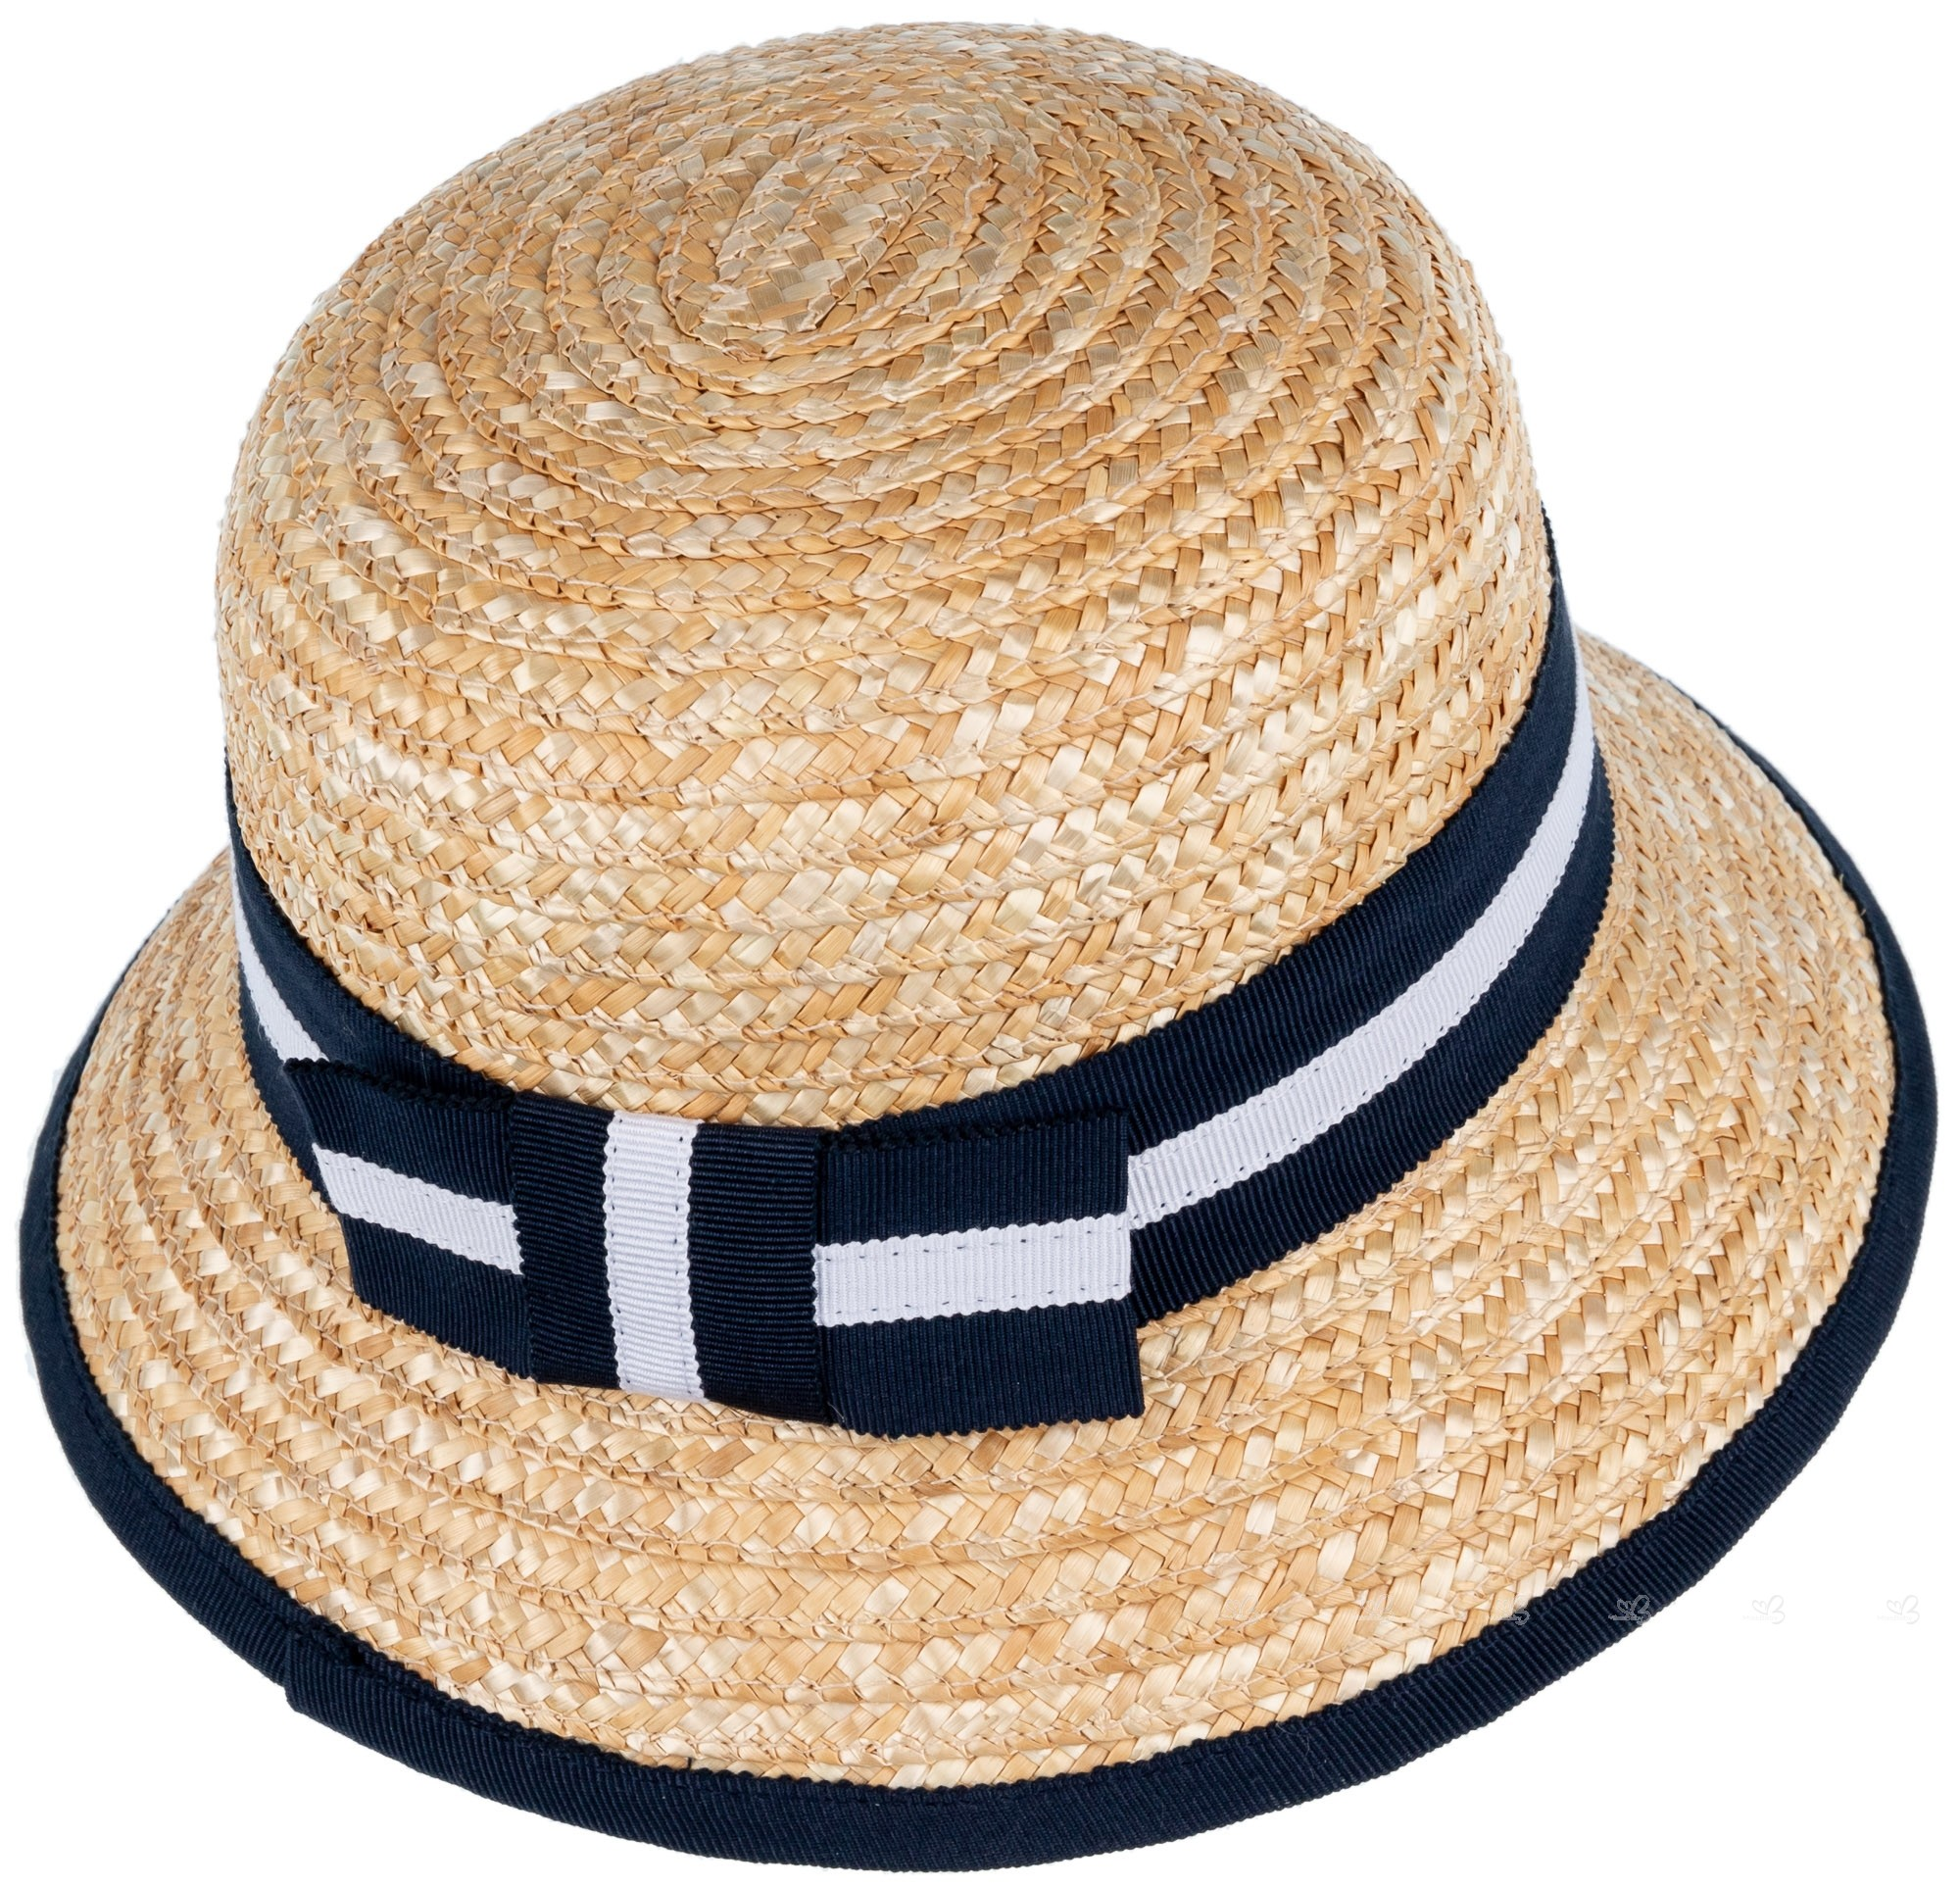 aedb0b8b Abel & Lula Girls Beige Straw Hat with Navy Blue & White Ribbon ...